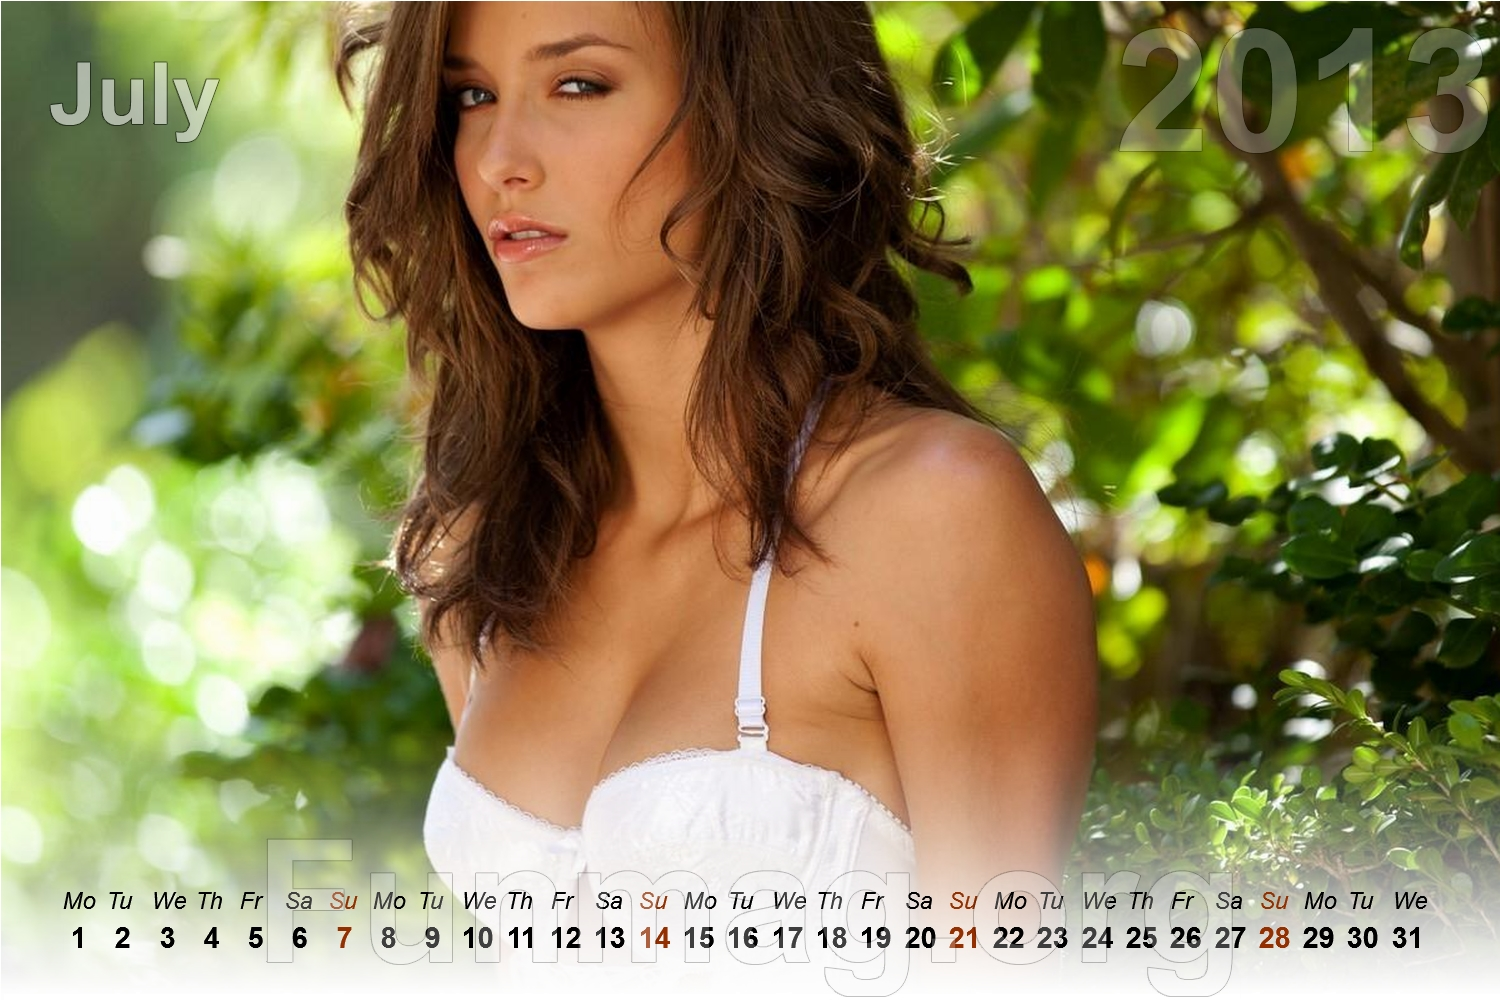 beautiful-women-calendar-2013- (7)